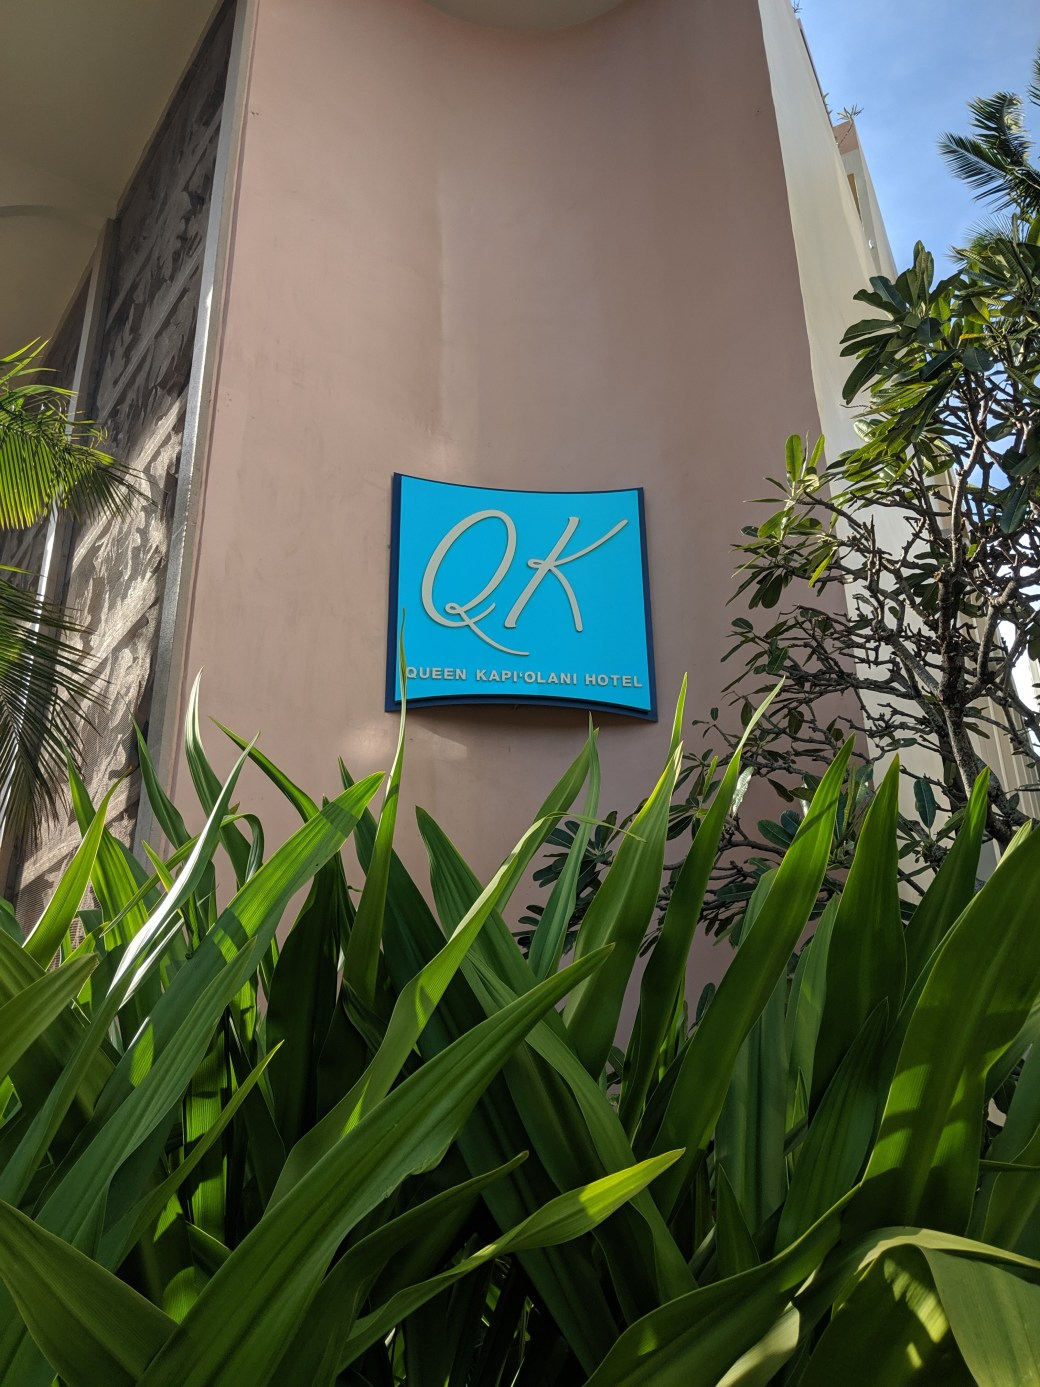 The Queen Kapiolani Hotel sign in Waikiki